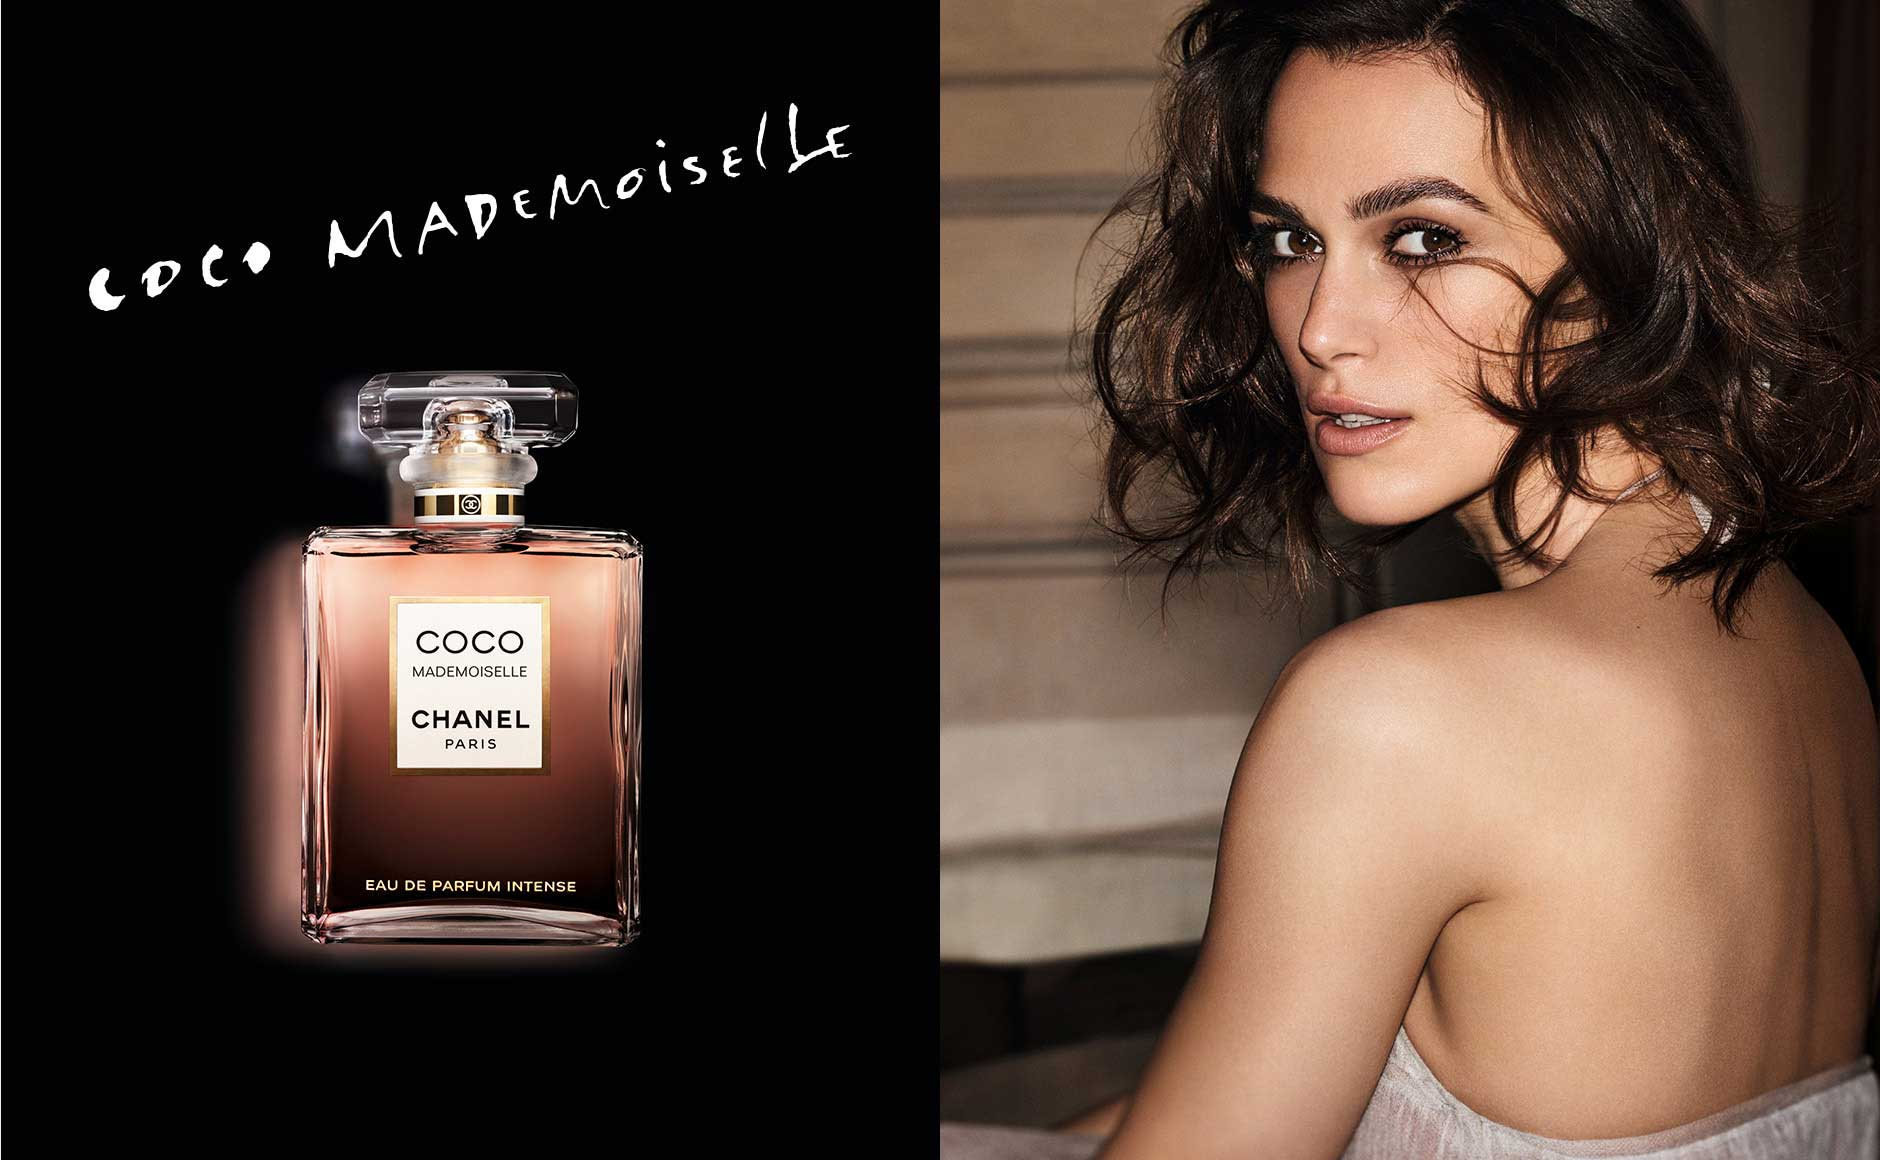 Coco Mademoiselle - Chanel Paris